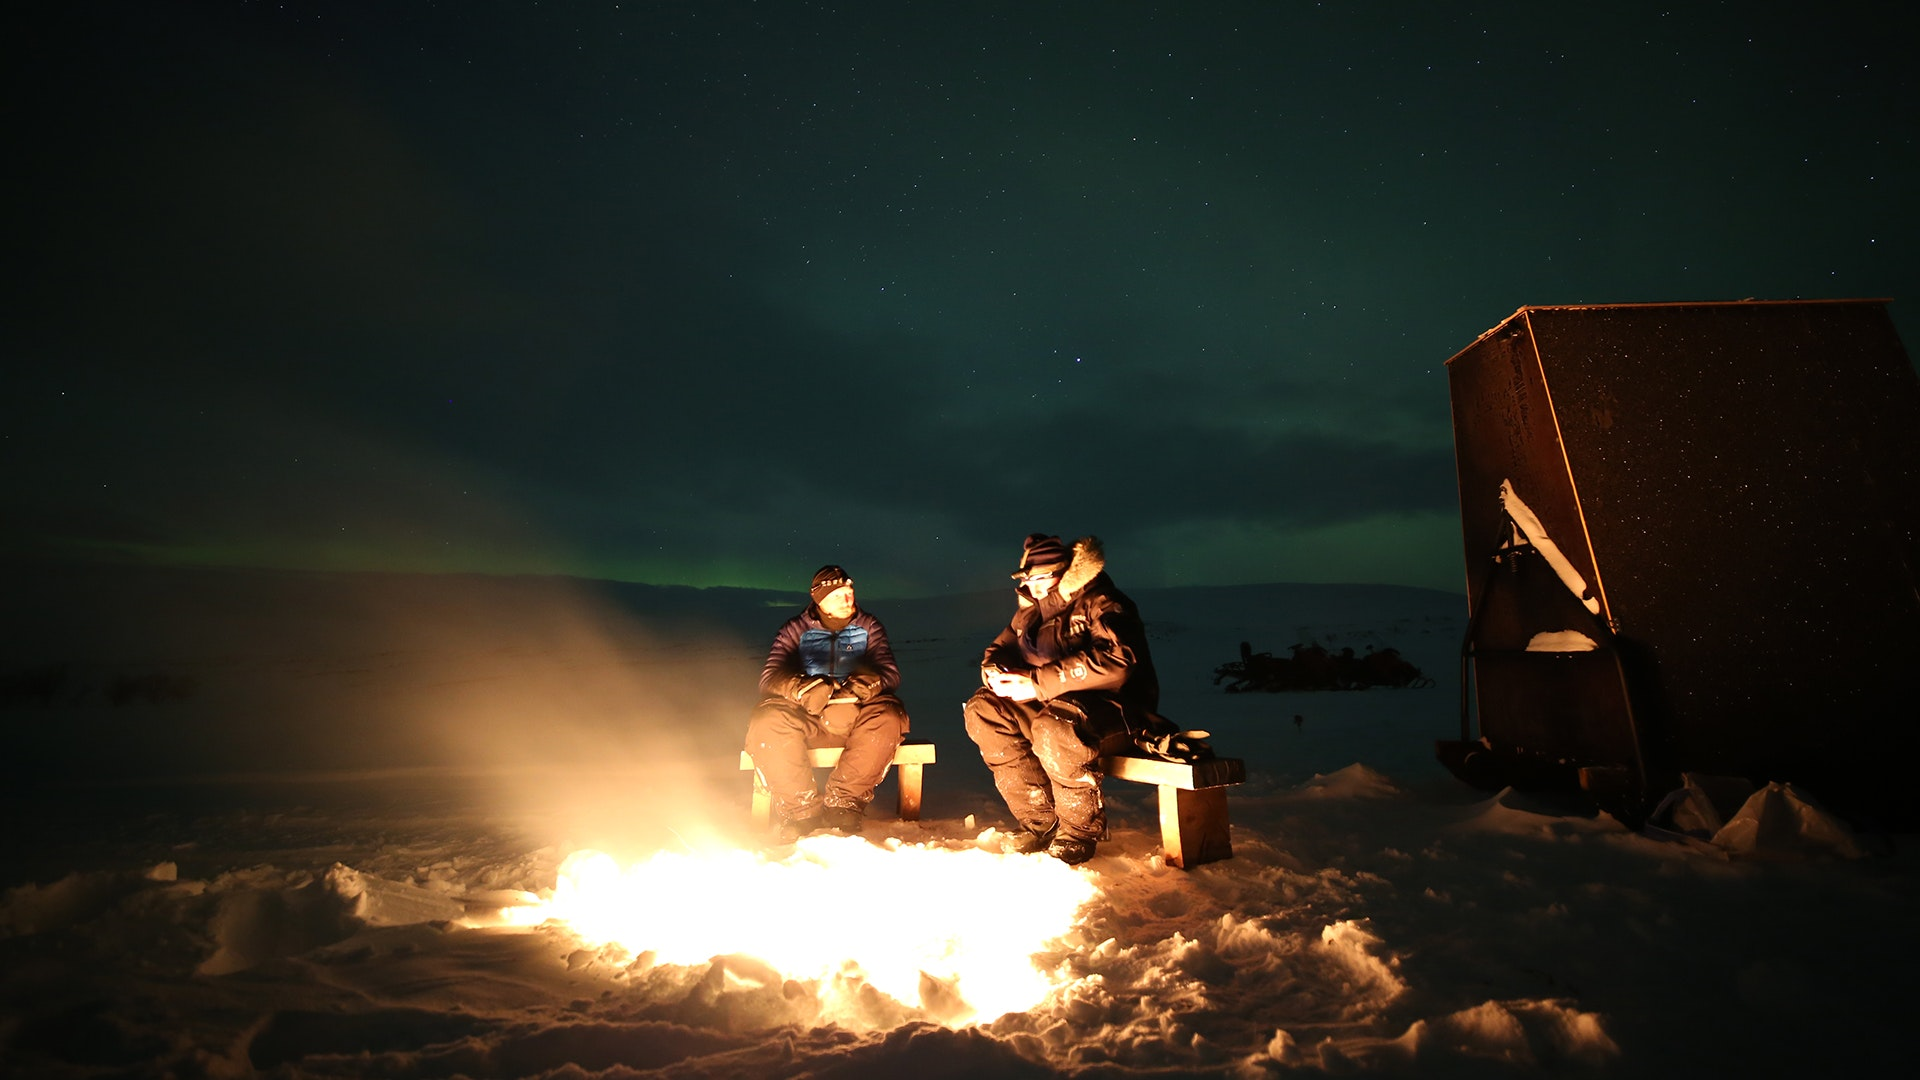 Kick off an evening of aurora viewing with reindeer sausage.